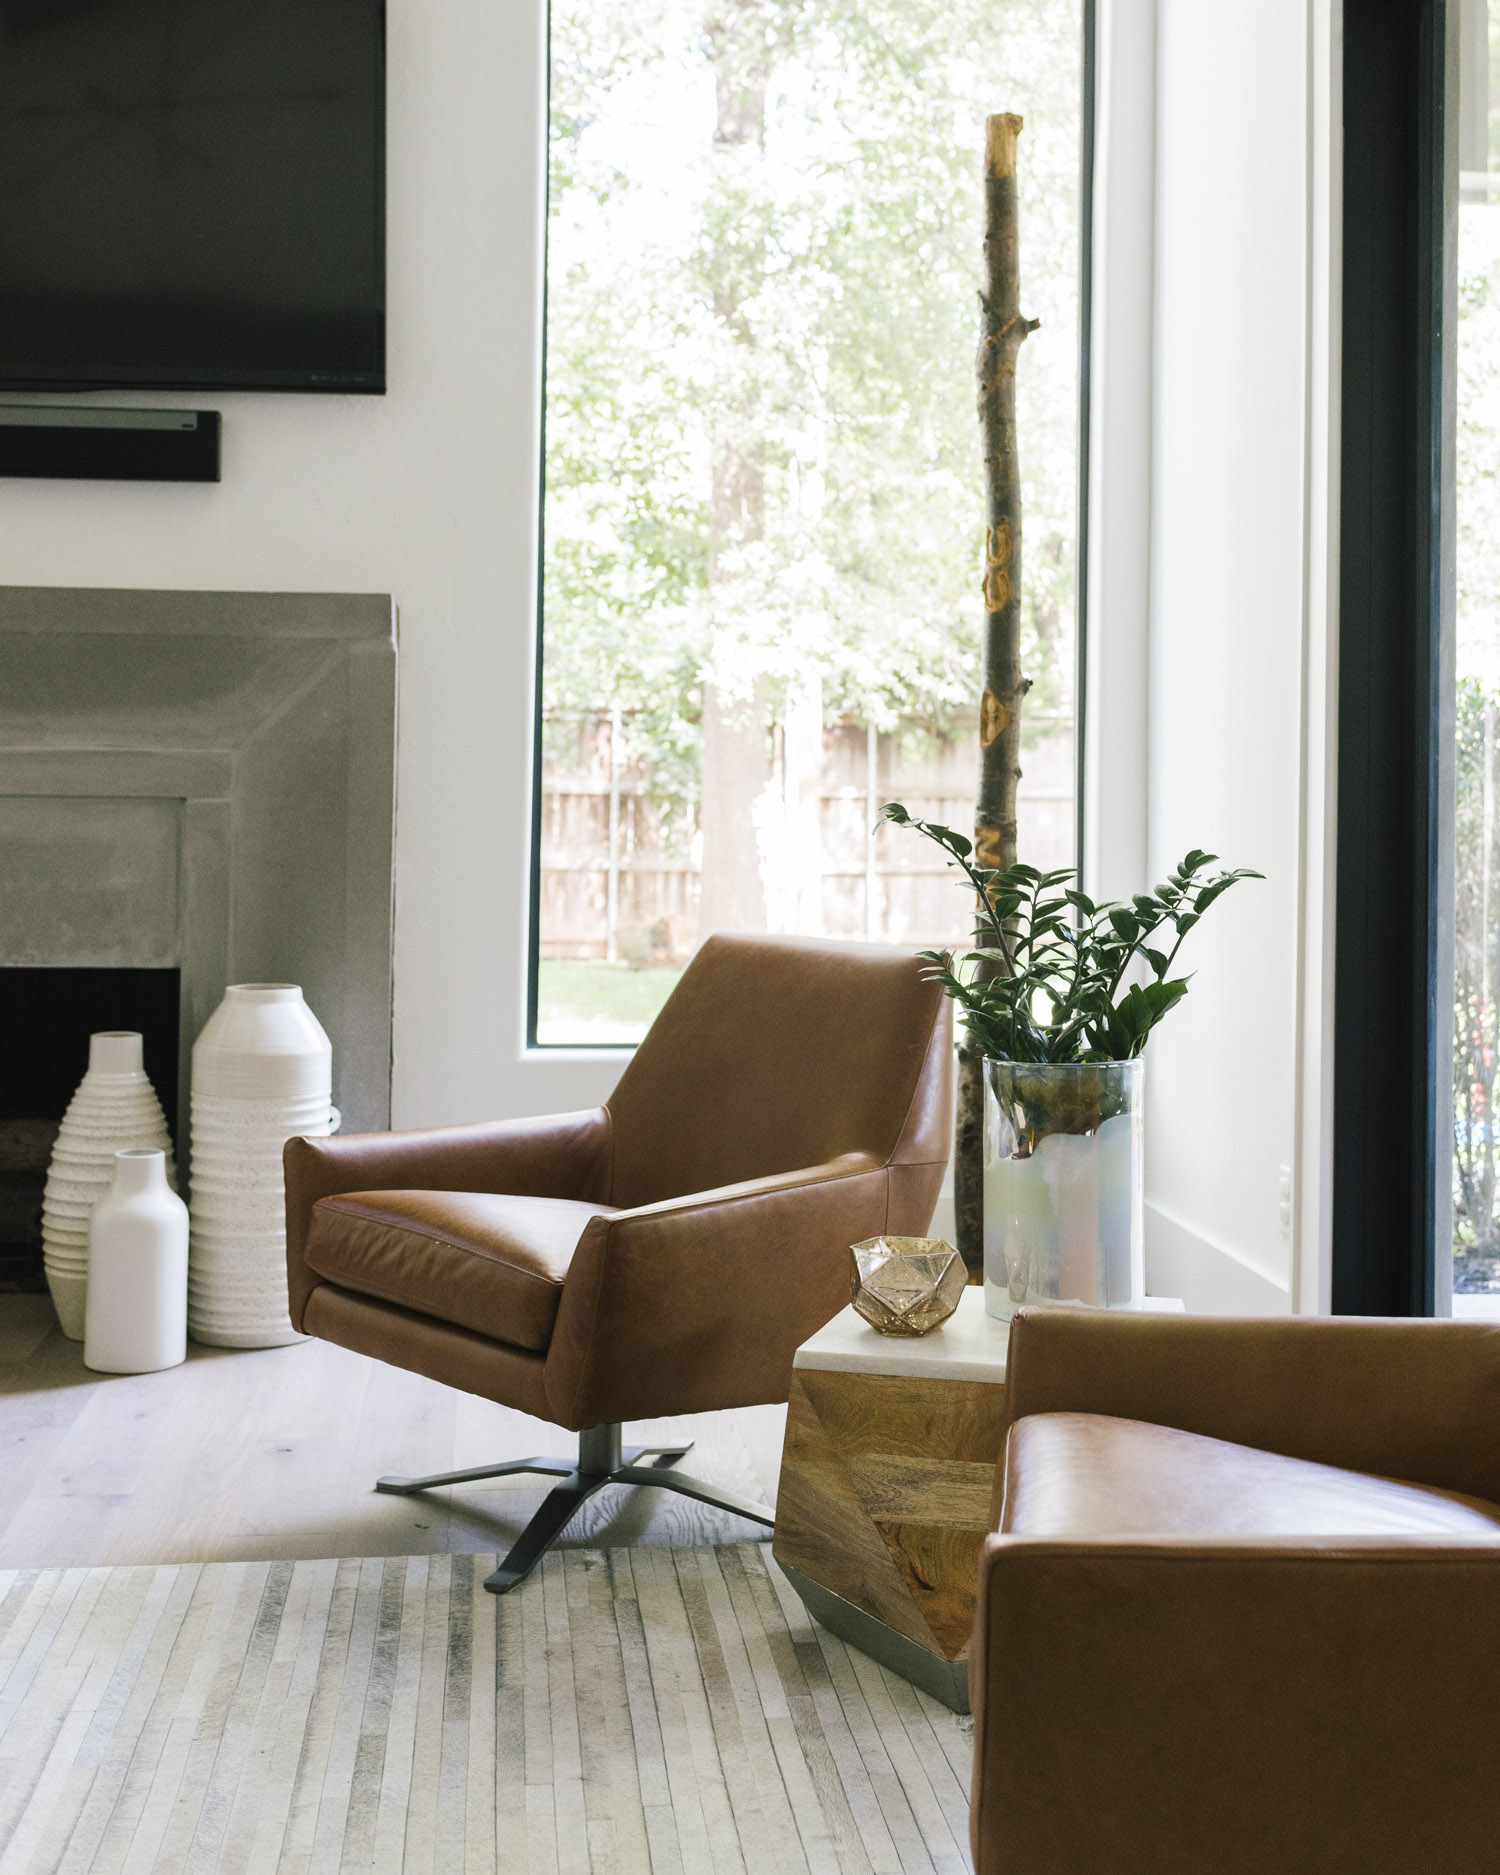 West Elm Chairs: West Elm Lucas Swivel Chair Review